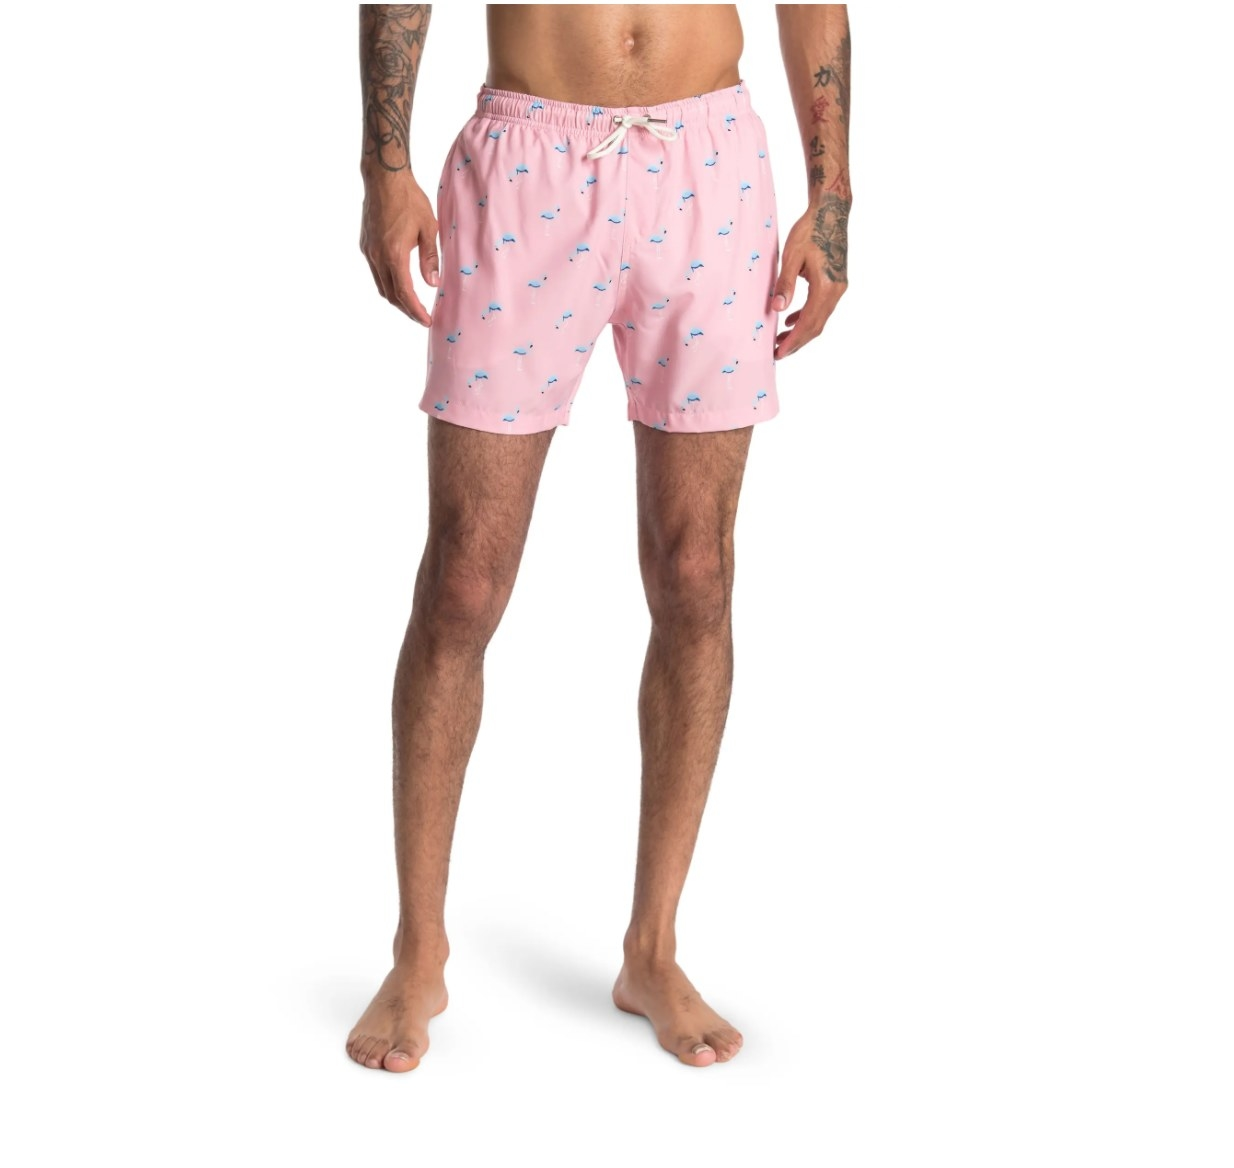 The pair of flamingo shorts in pink